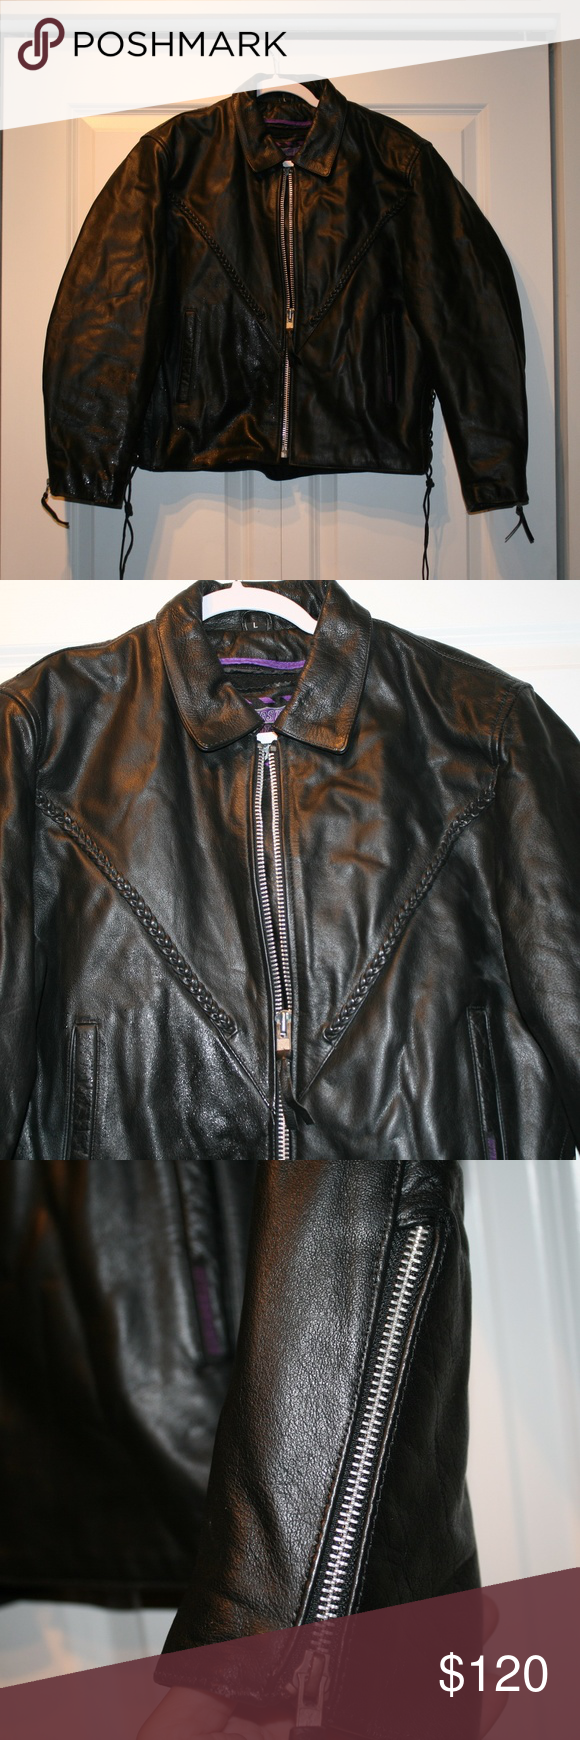 Interstate Leather Sz L Lined Motorcycle Jacket Jackets Motorcycle Jacket Leather Jacket [ 1740 x 580 Pixel ]